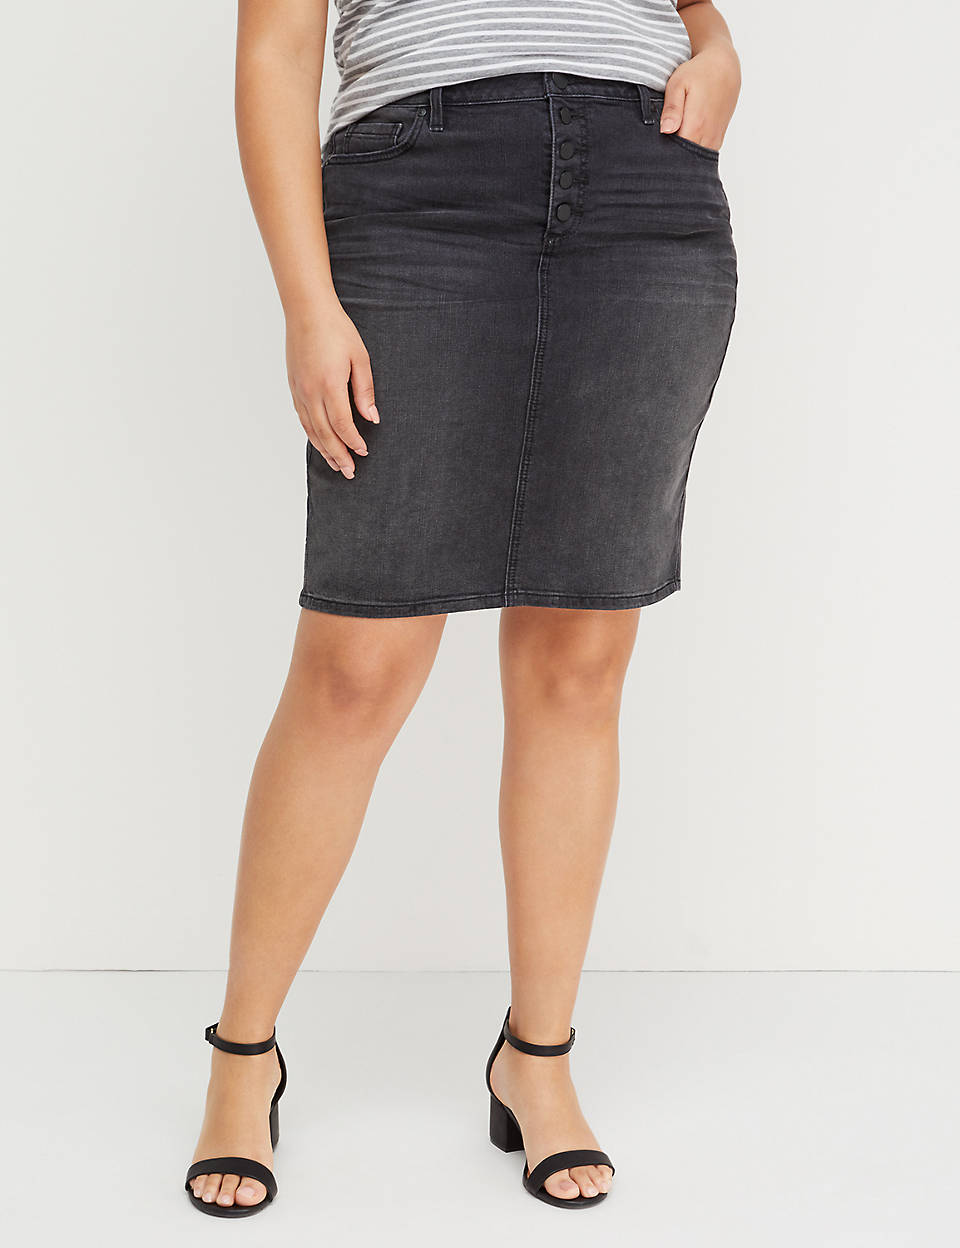 807be9901f2d Washed Black Denim Skirt - Exposed Button Fly | Lane Bryant